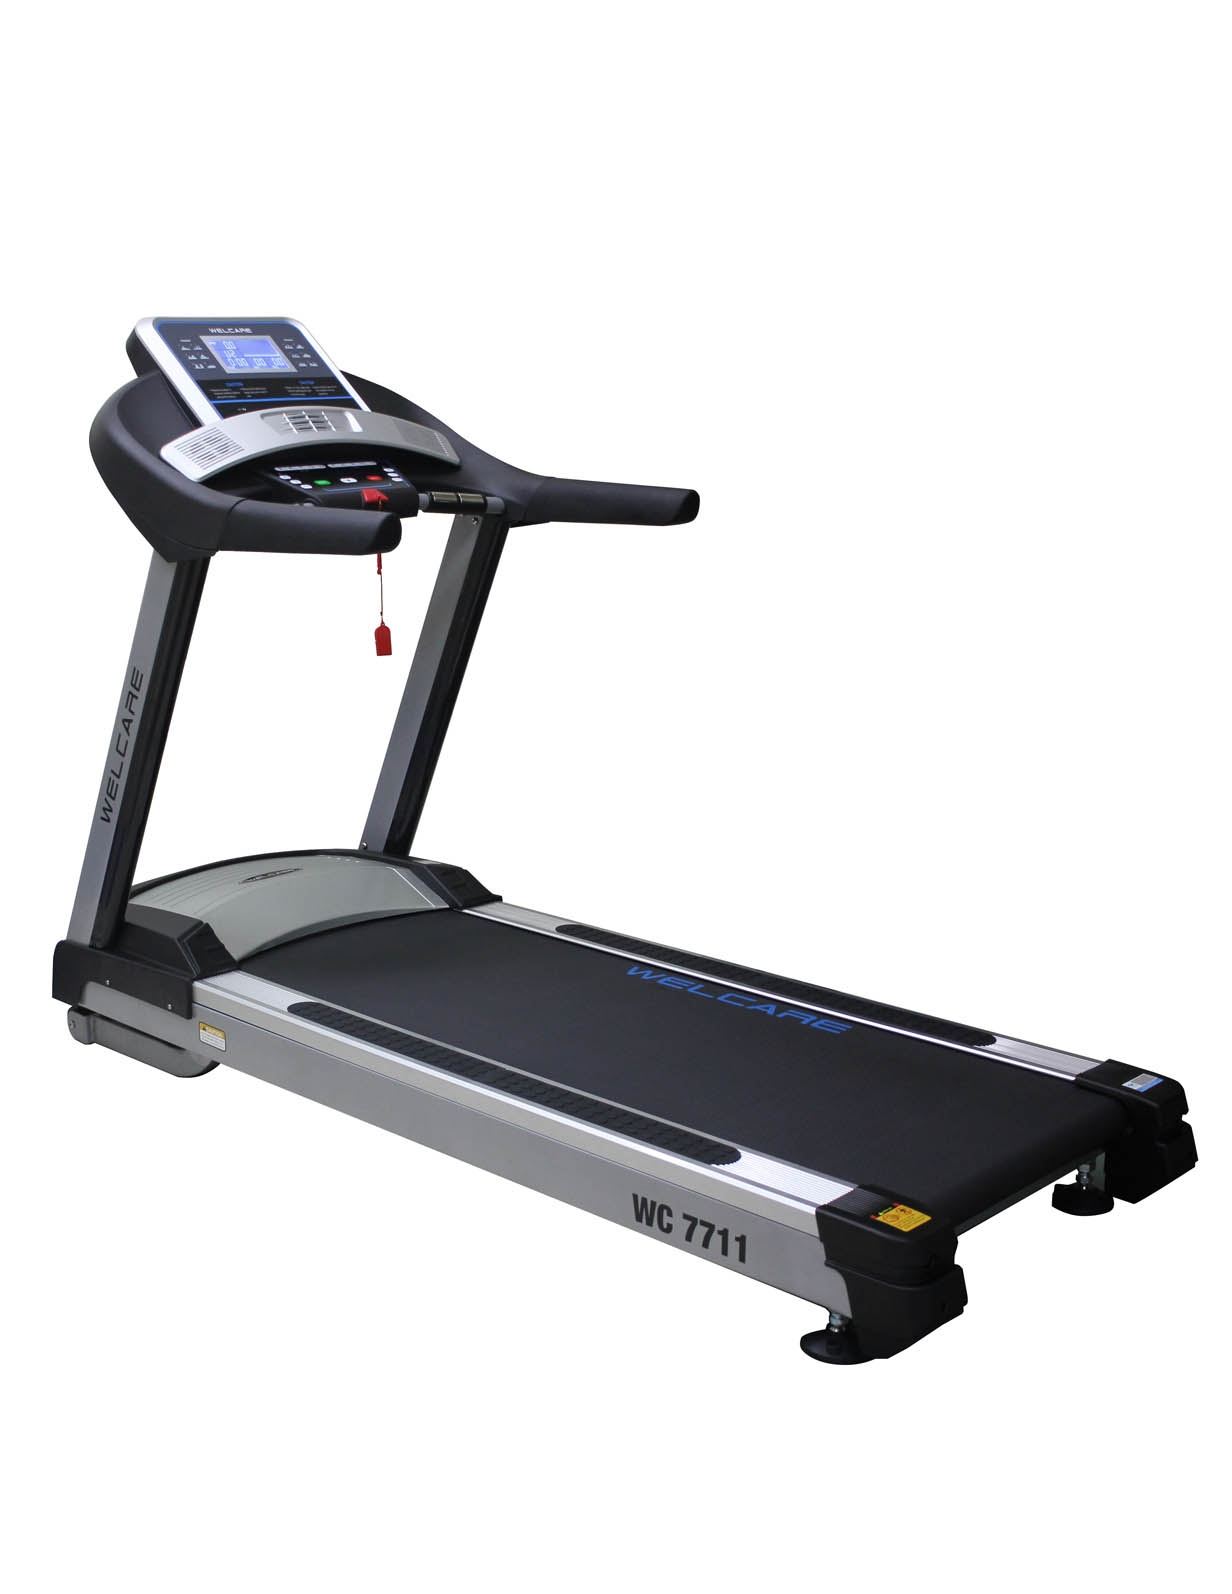 WC 7711 MOTORIZED TREADMILL